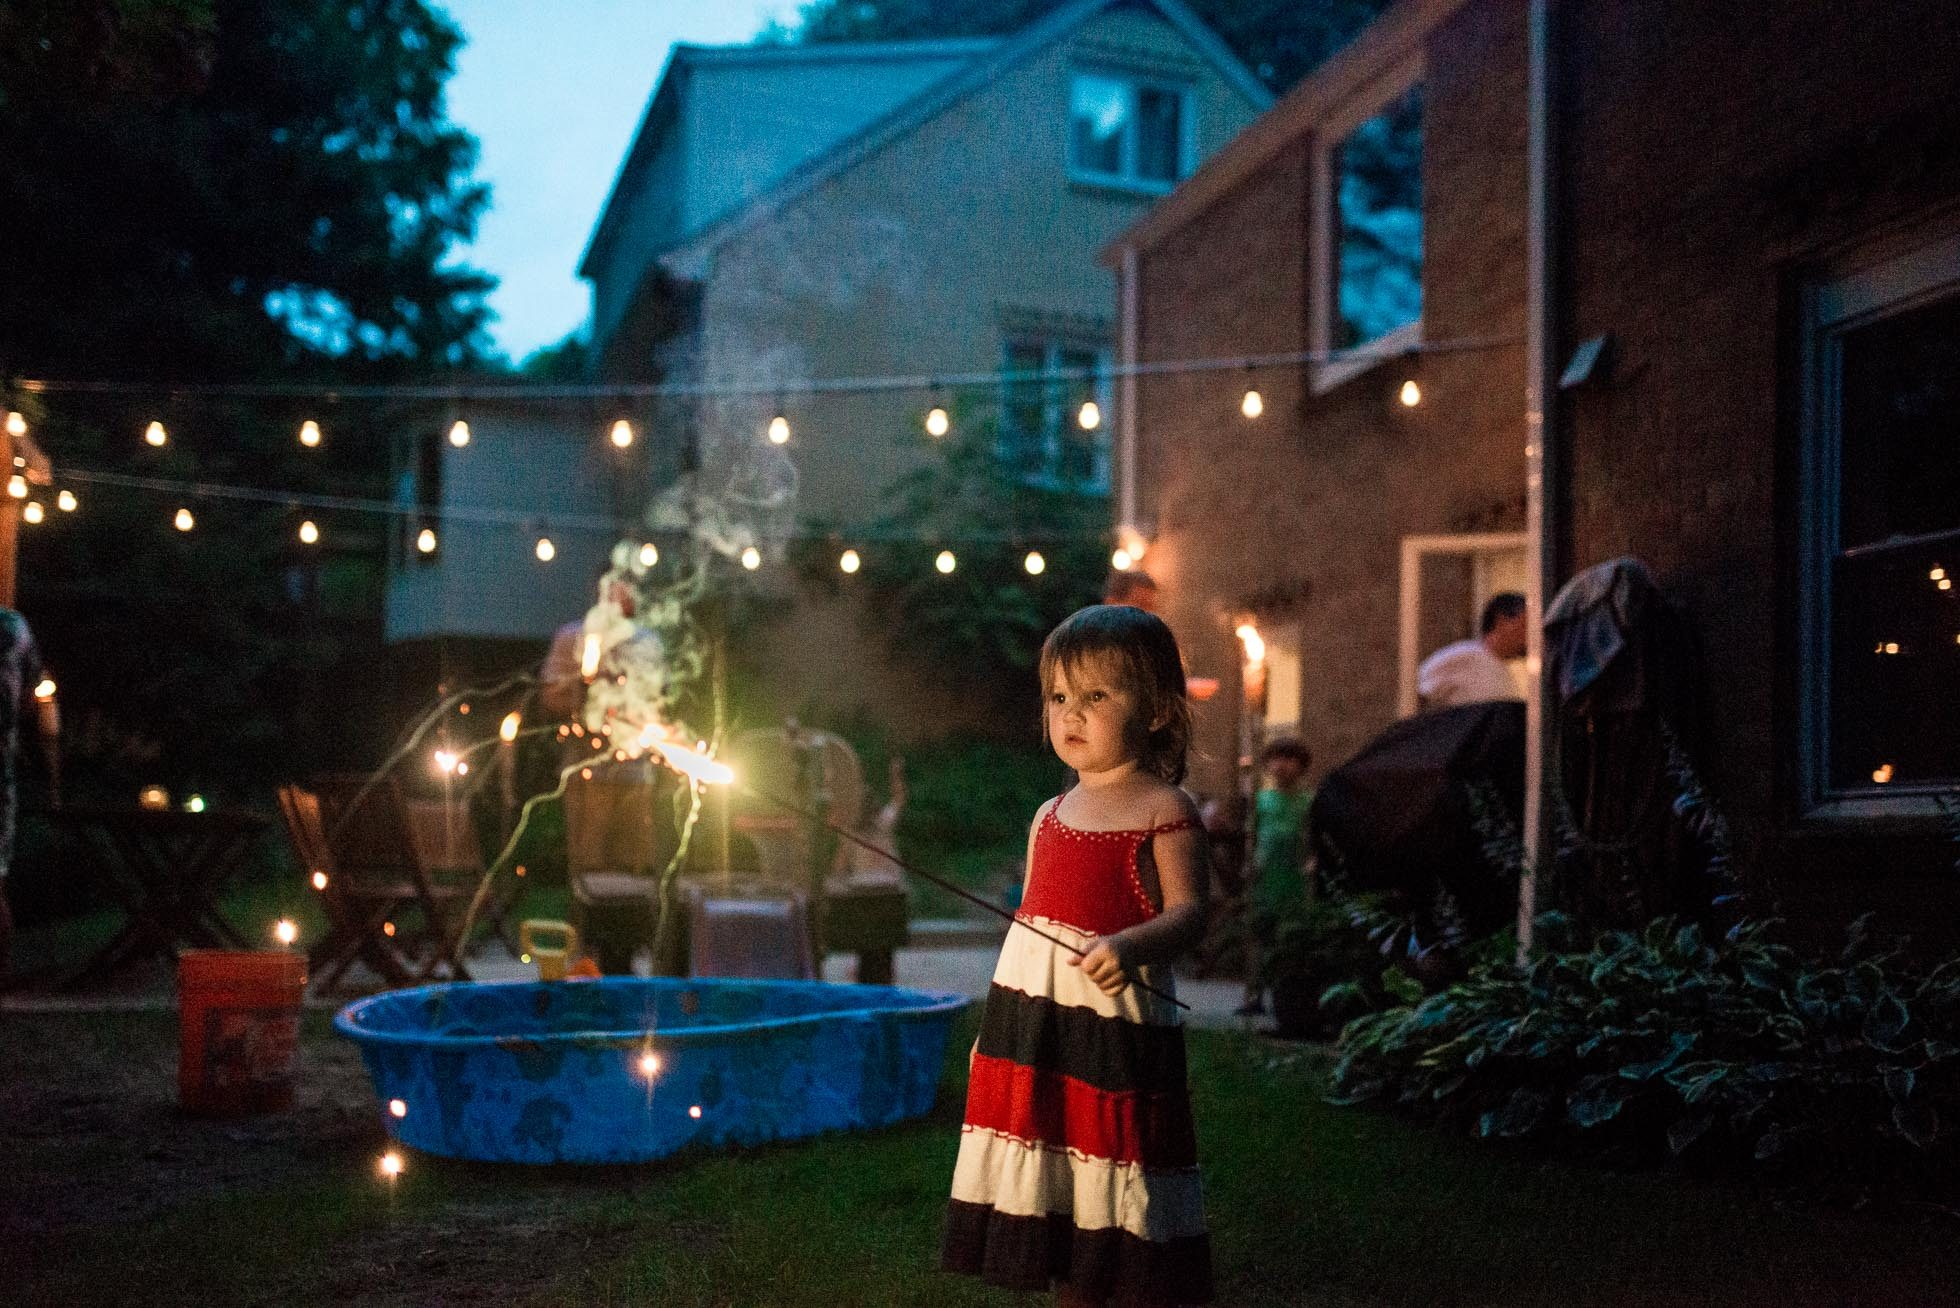 girl holding sparkler on fourth of july in the backyard